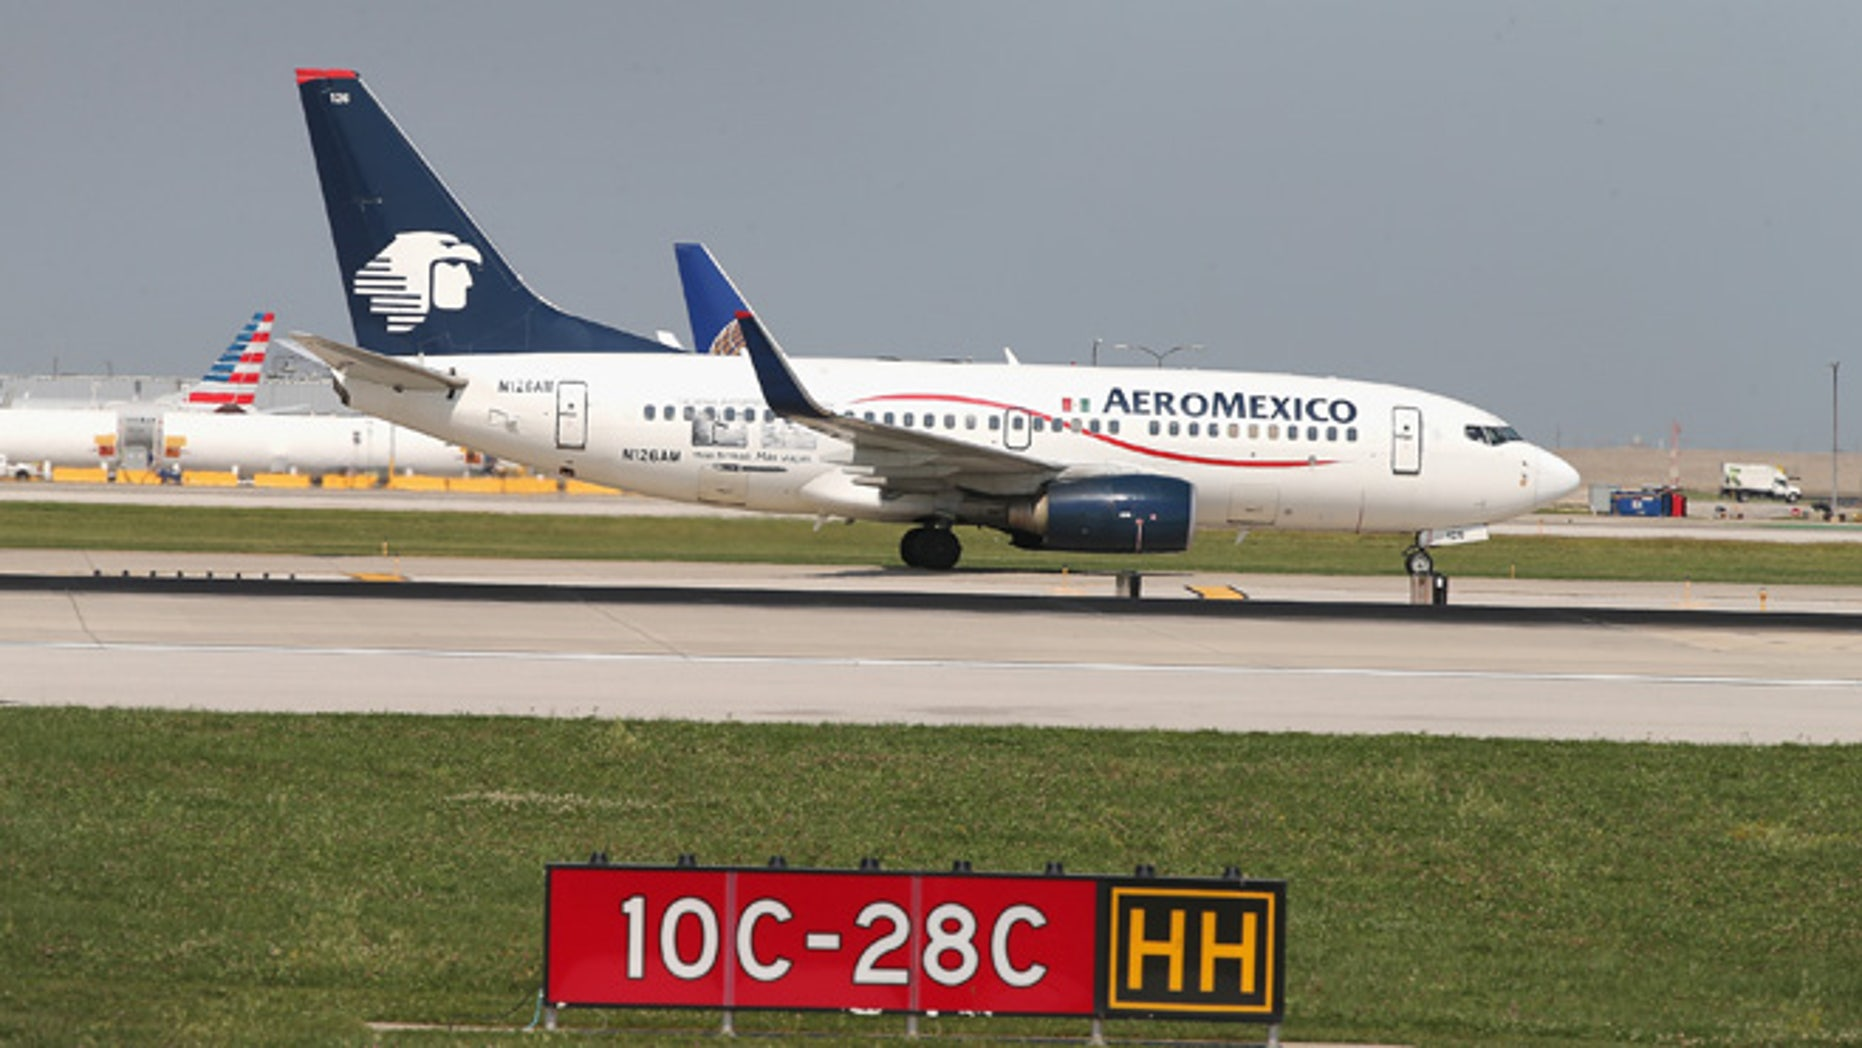 CHICAGO, IL - SEPTEMBER 19: An AeroMexico jet taxis at O'Hare International Airport on September 19, 2014 in Chicago, Illinois. In 2013, 67 million passengers passed through O'Hare, another 20 million passed through Chicago's Midway Airport, and the two airports combined moved more than 1.4 million tons of air cargo. (Photo by Scott Olson/Getty Images)